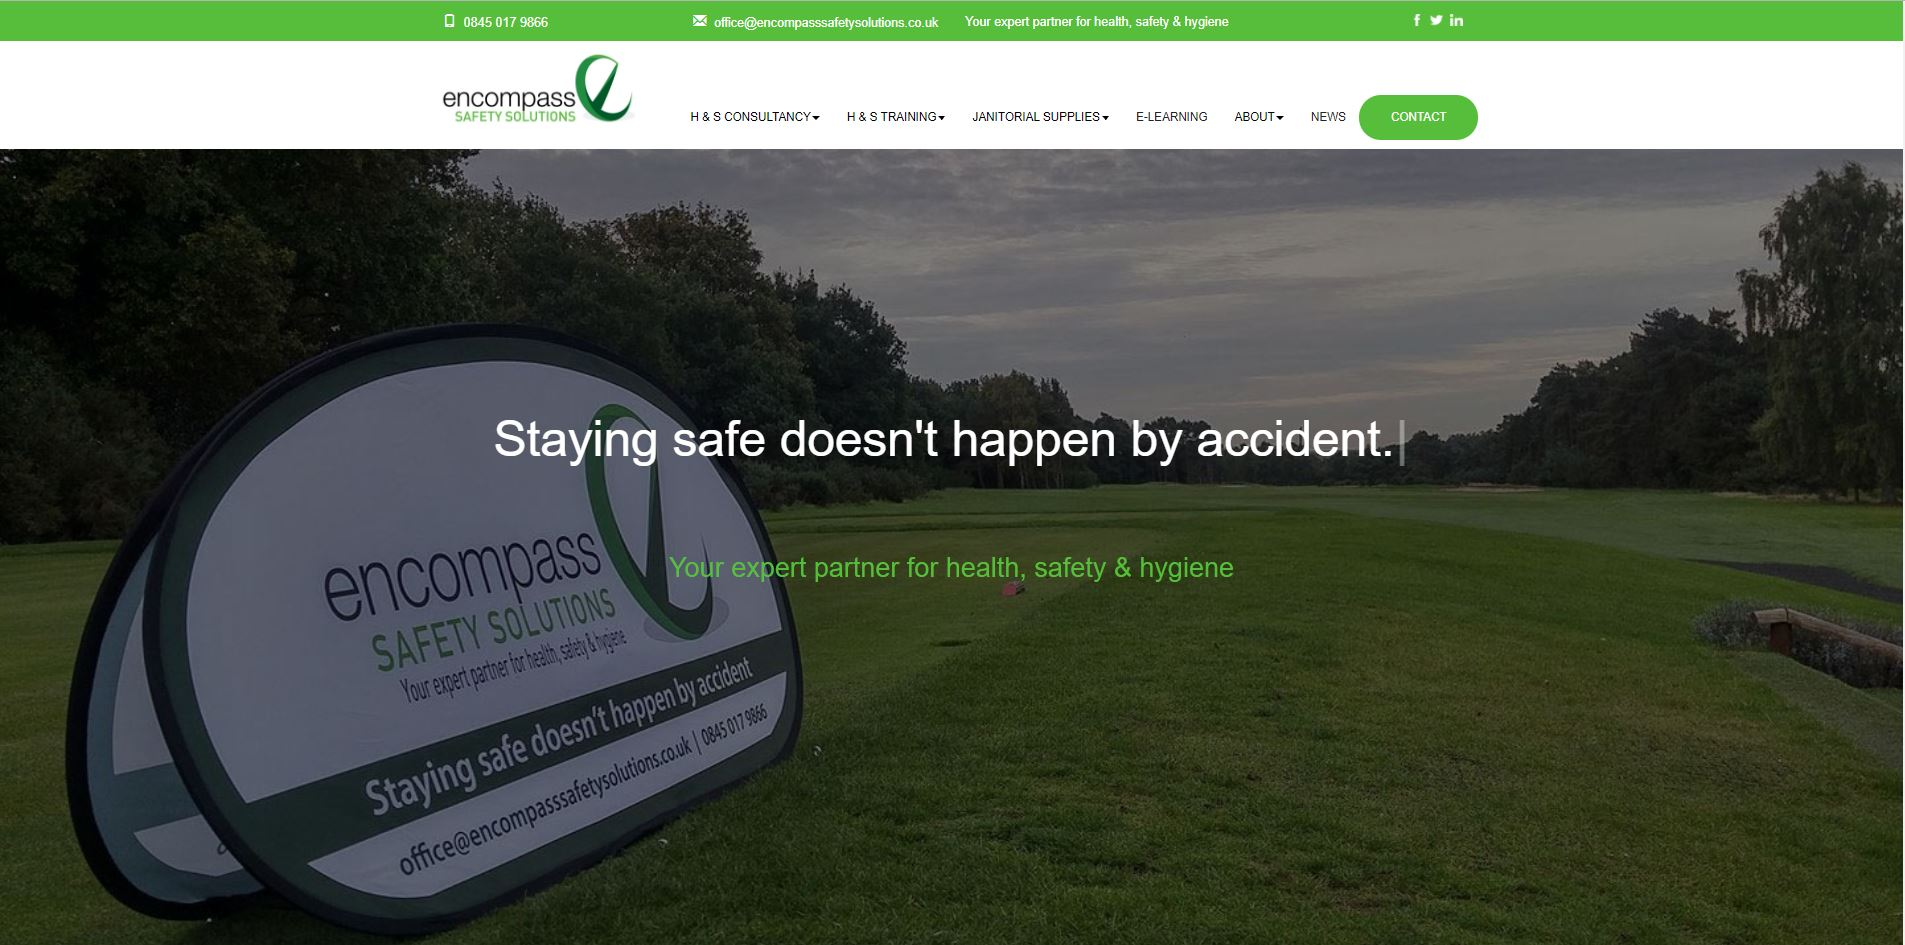 Encompass Safety Solutions new website is live and ready to generate enquiries!